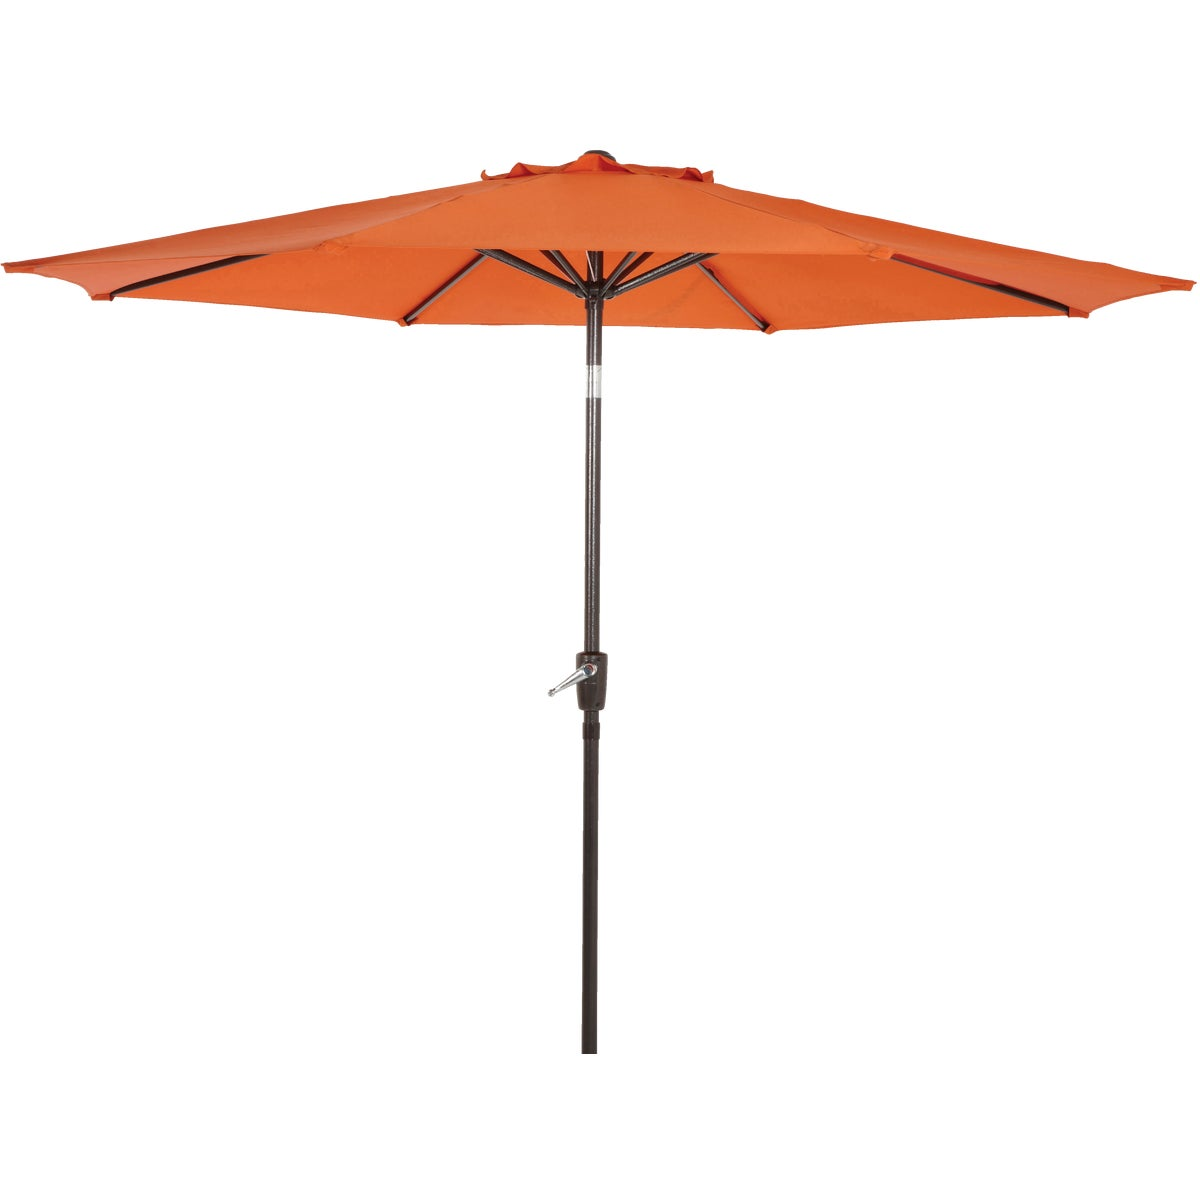 9' ORANGE ALUM UMBRELLA